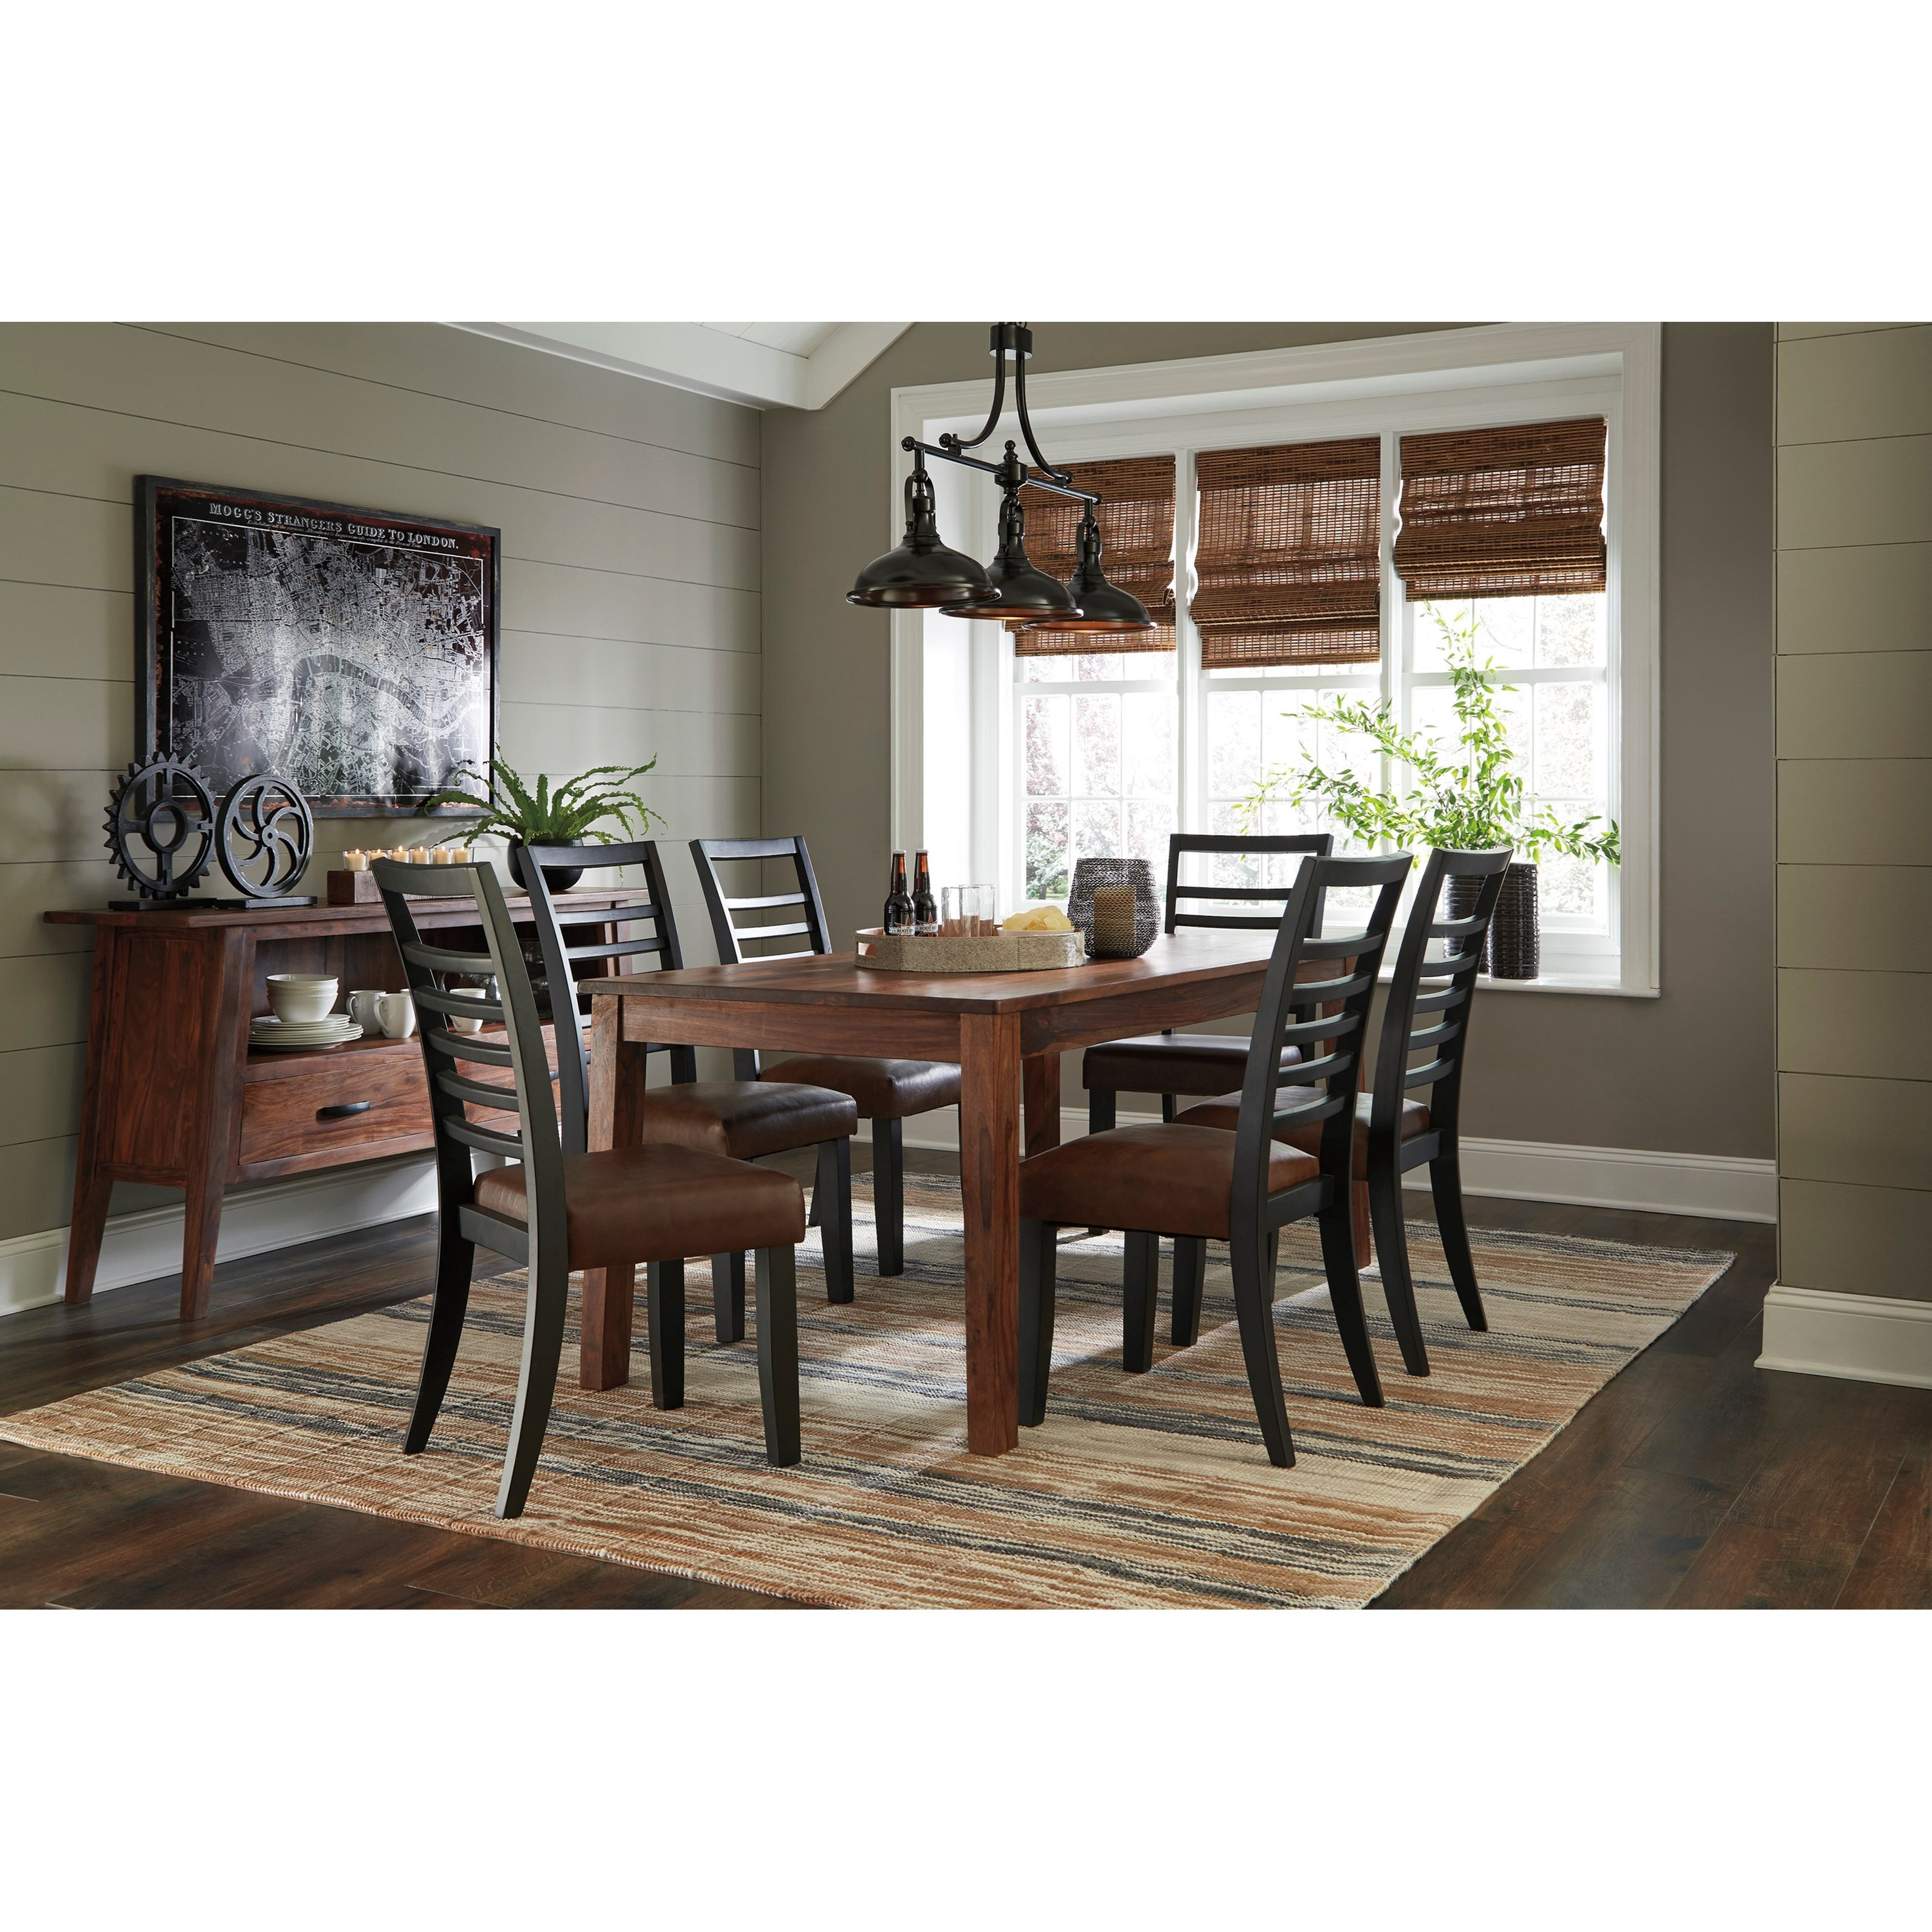 Signature design by ashley manishore casual dining room for Casual dining room chairs